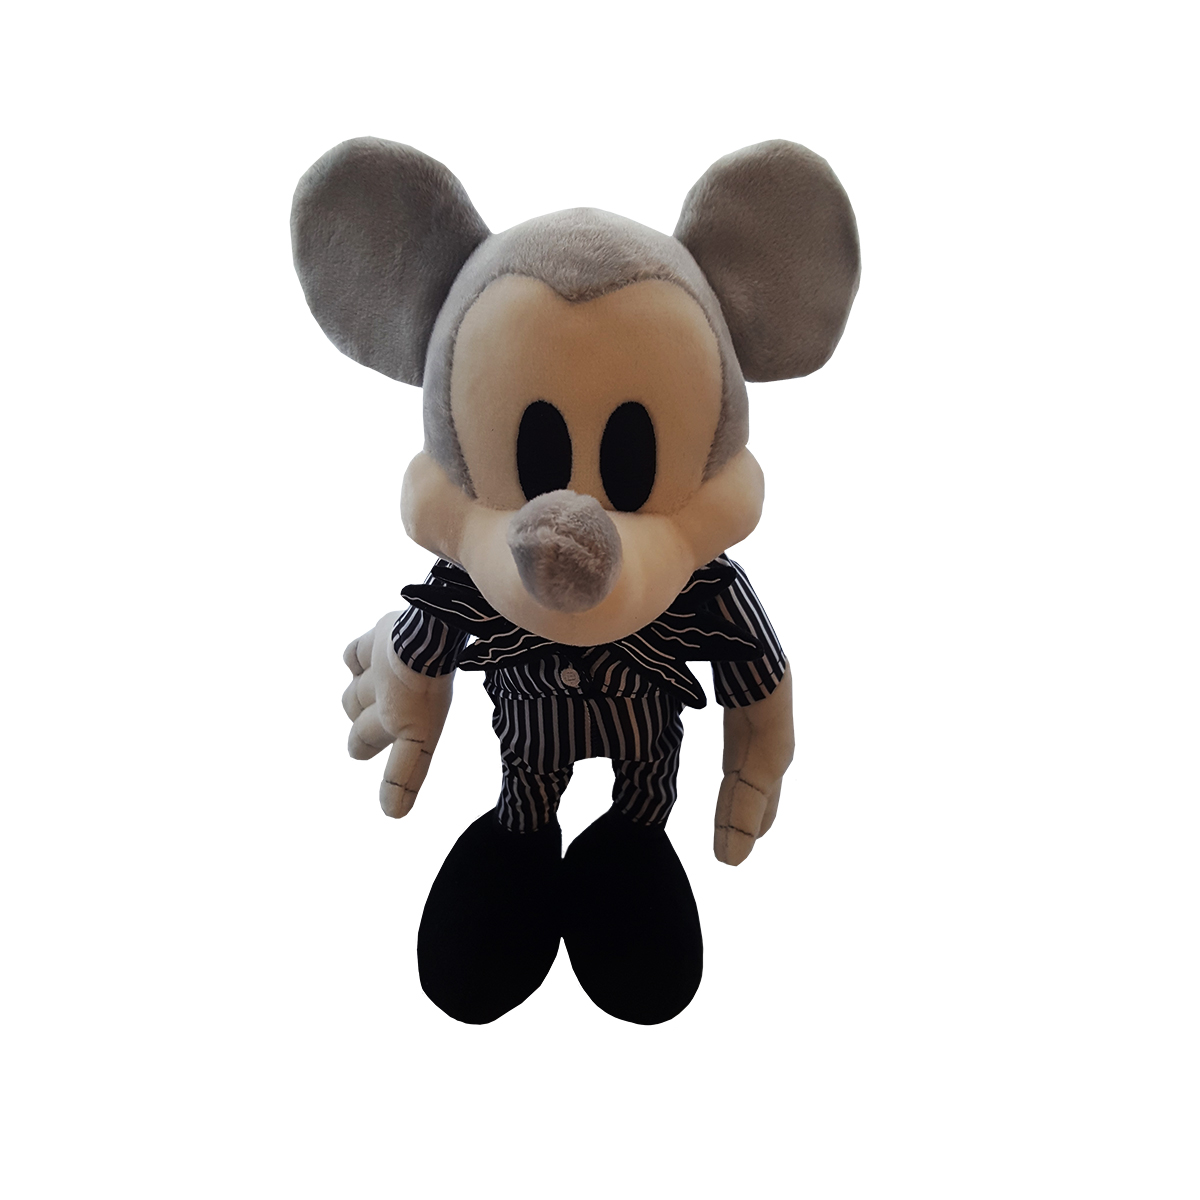 Disney Parks The Nightmare Before Christmas Jack Skellington Mickey Mouse Plush